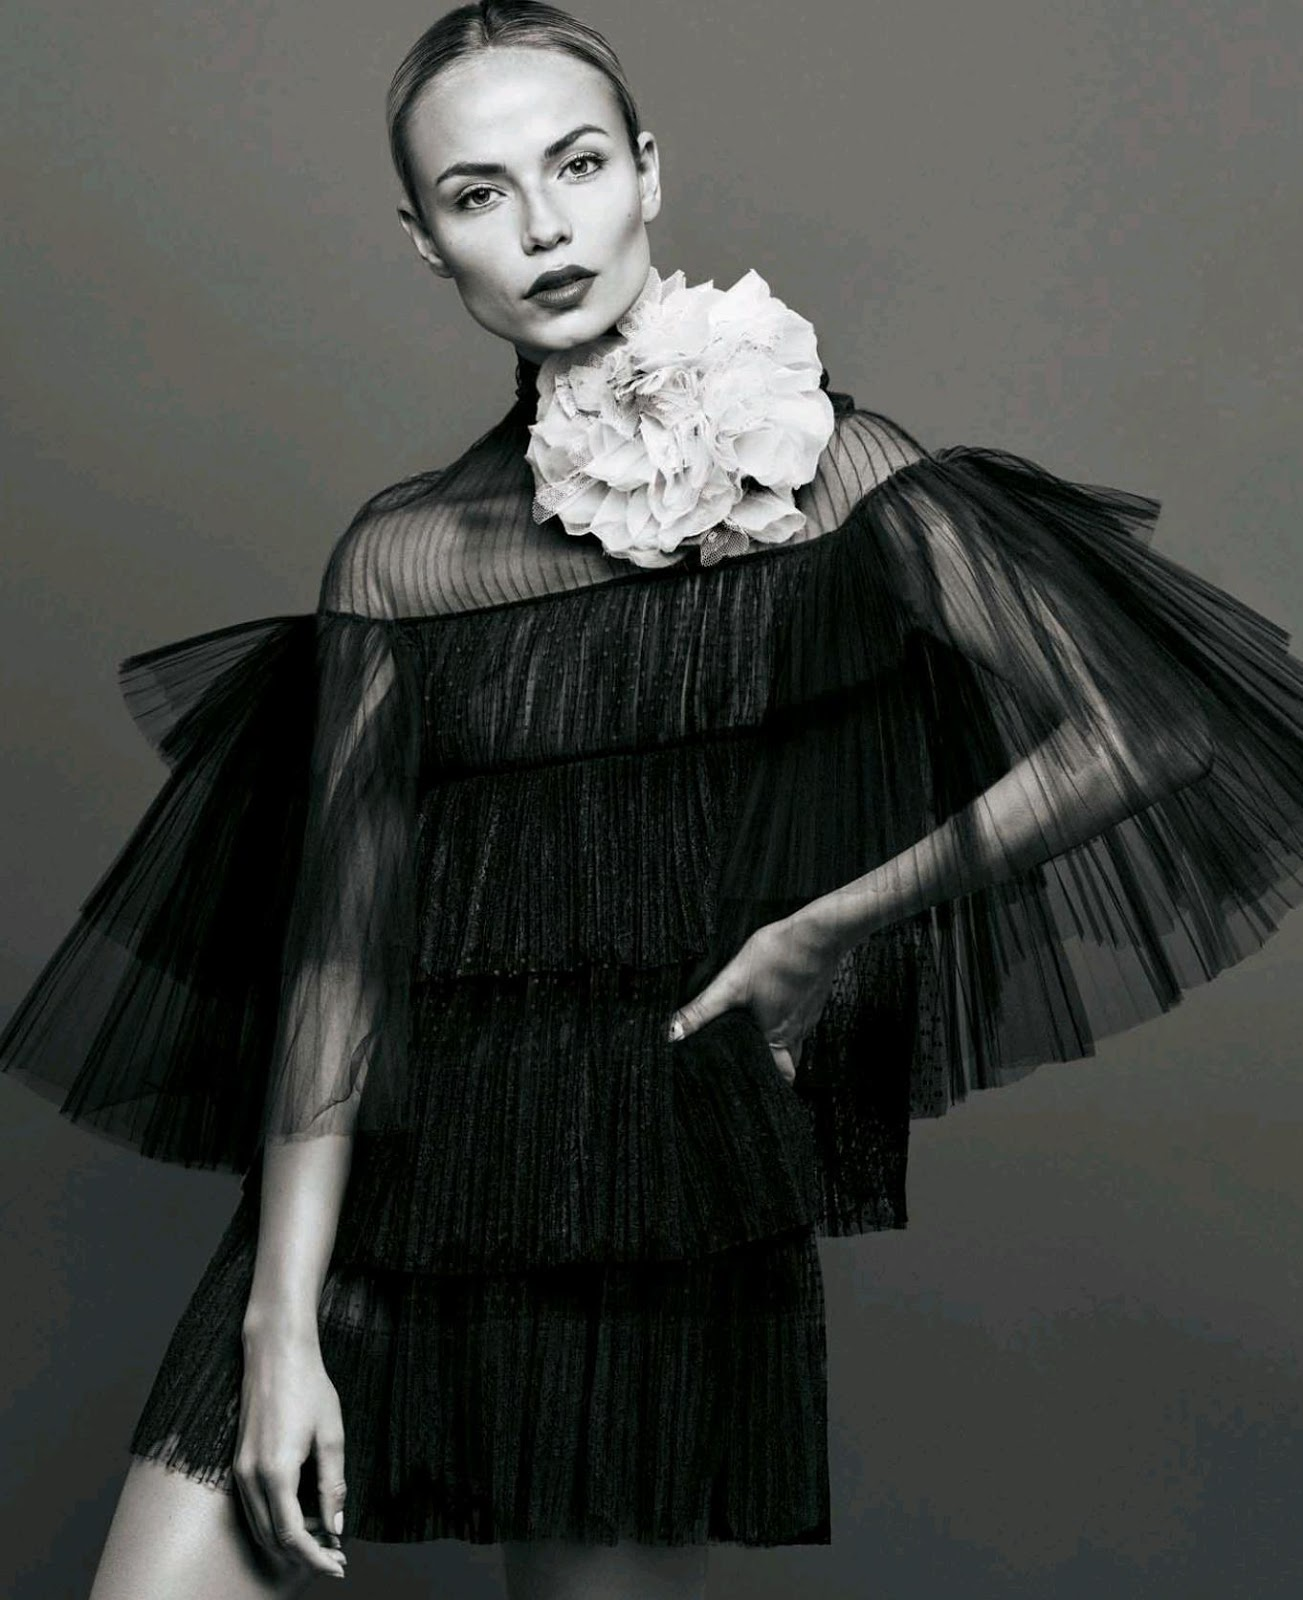 In fashion, what does editorial mean? - Quora